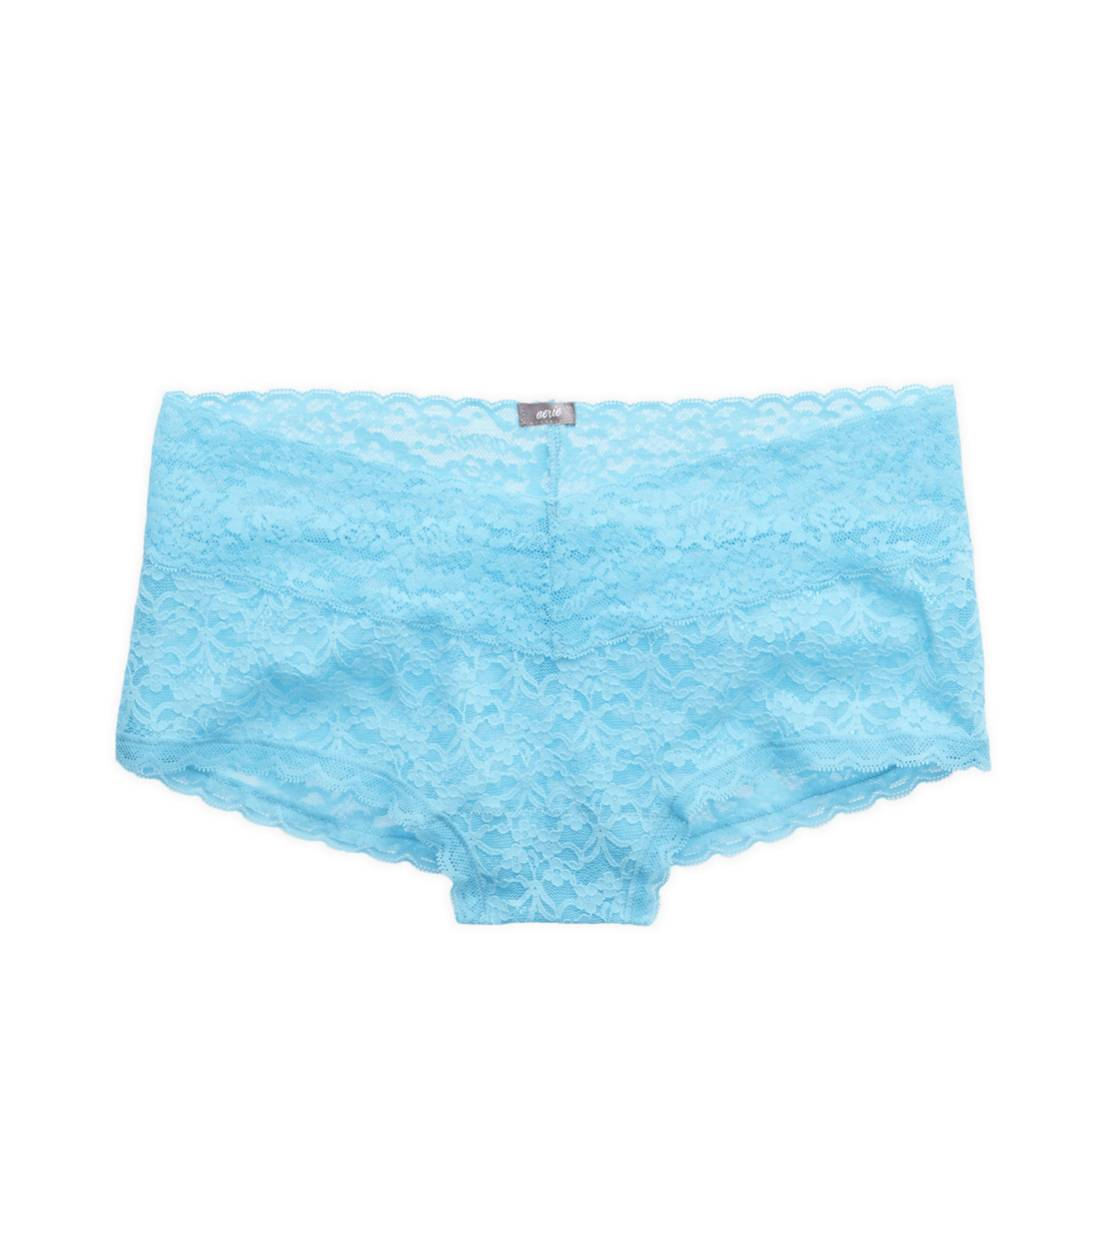 Aquarius Aerie Vintage Lace Girly Short